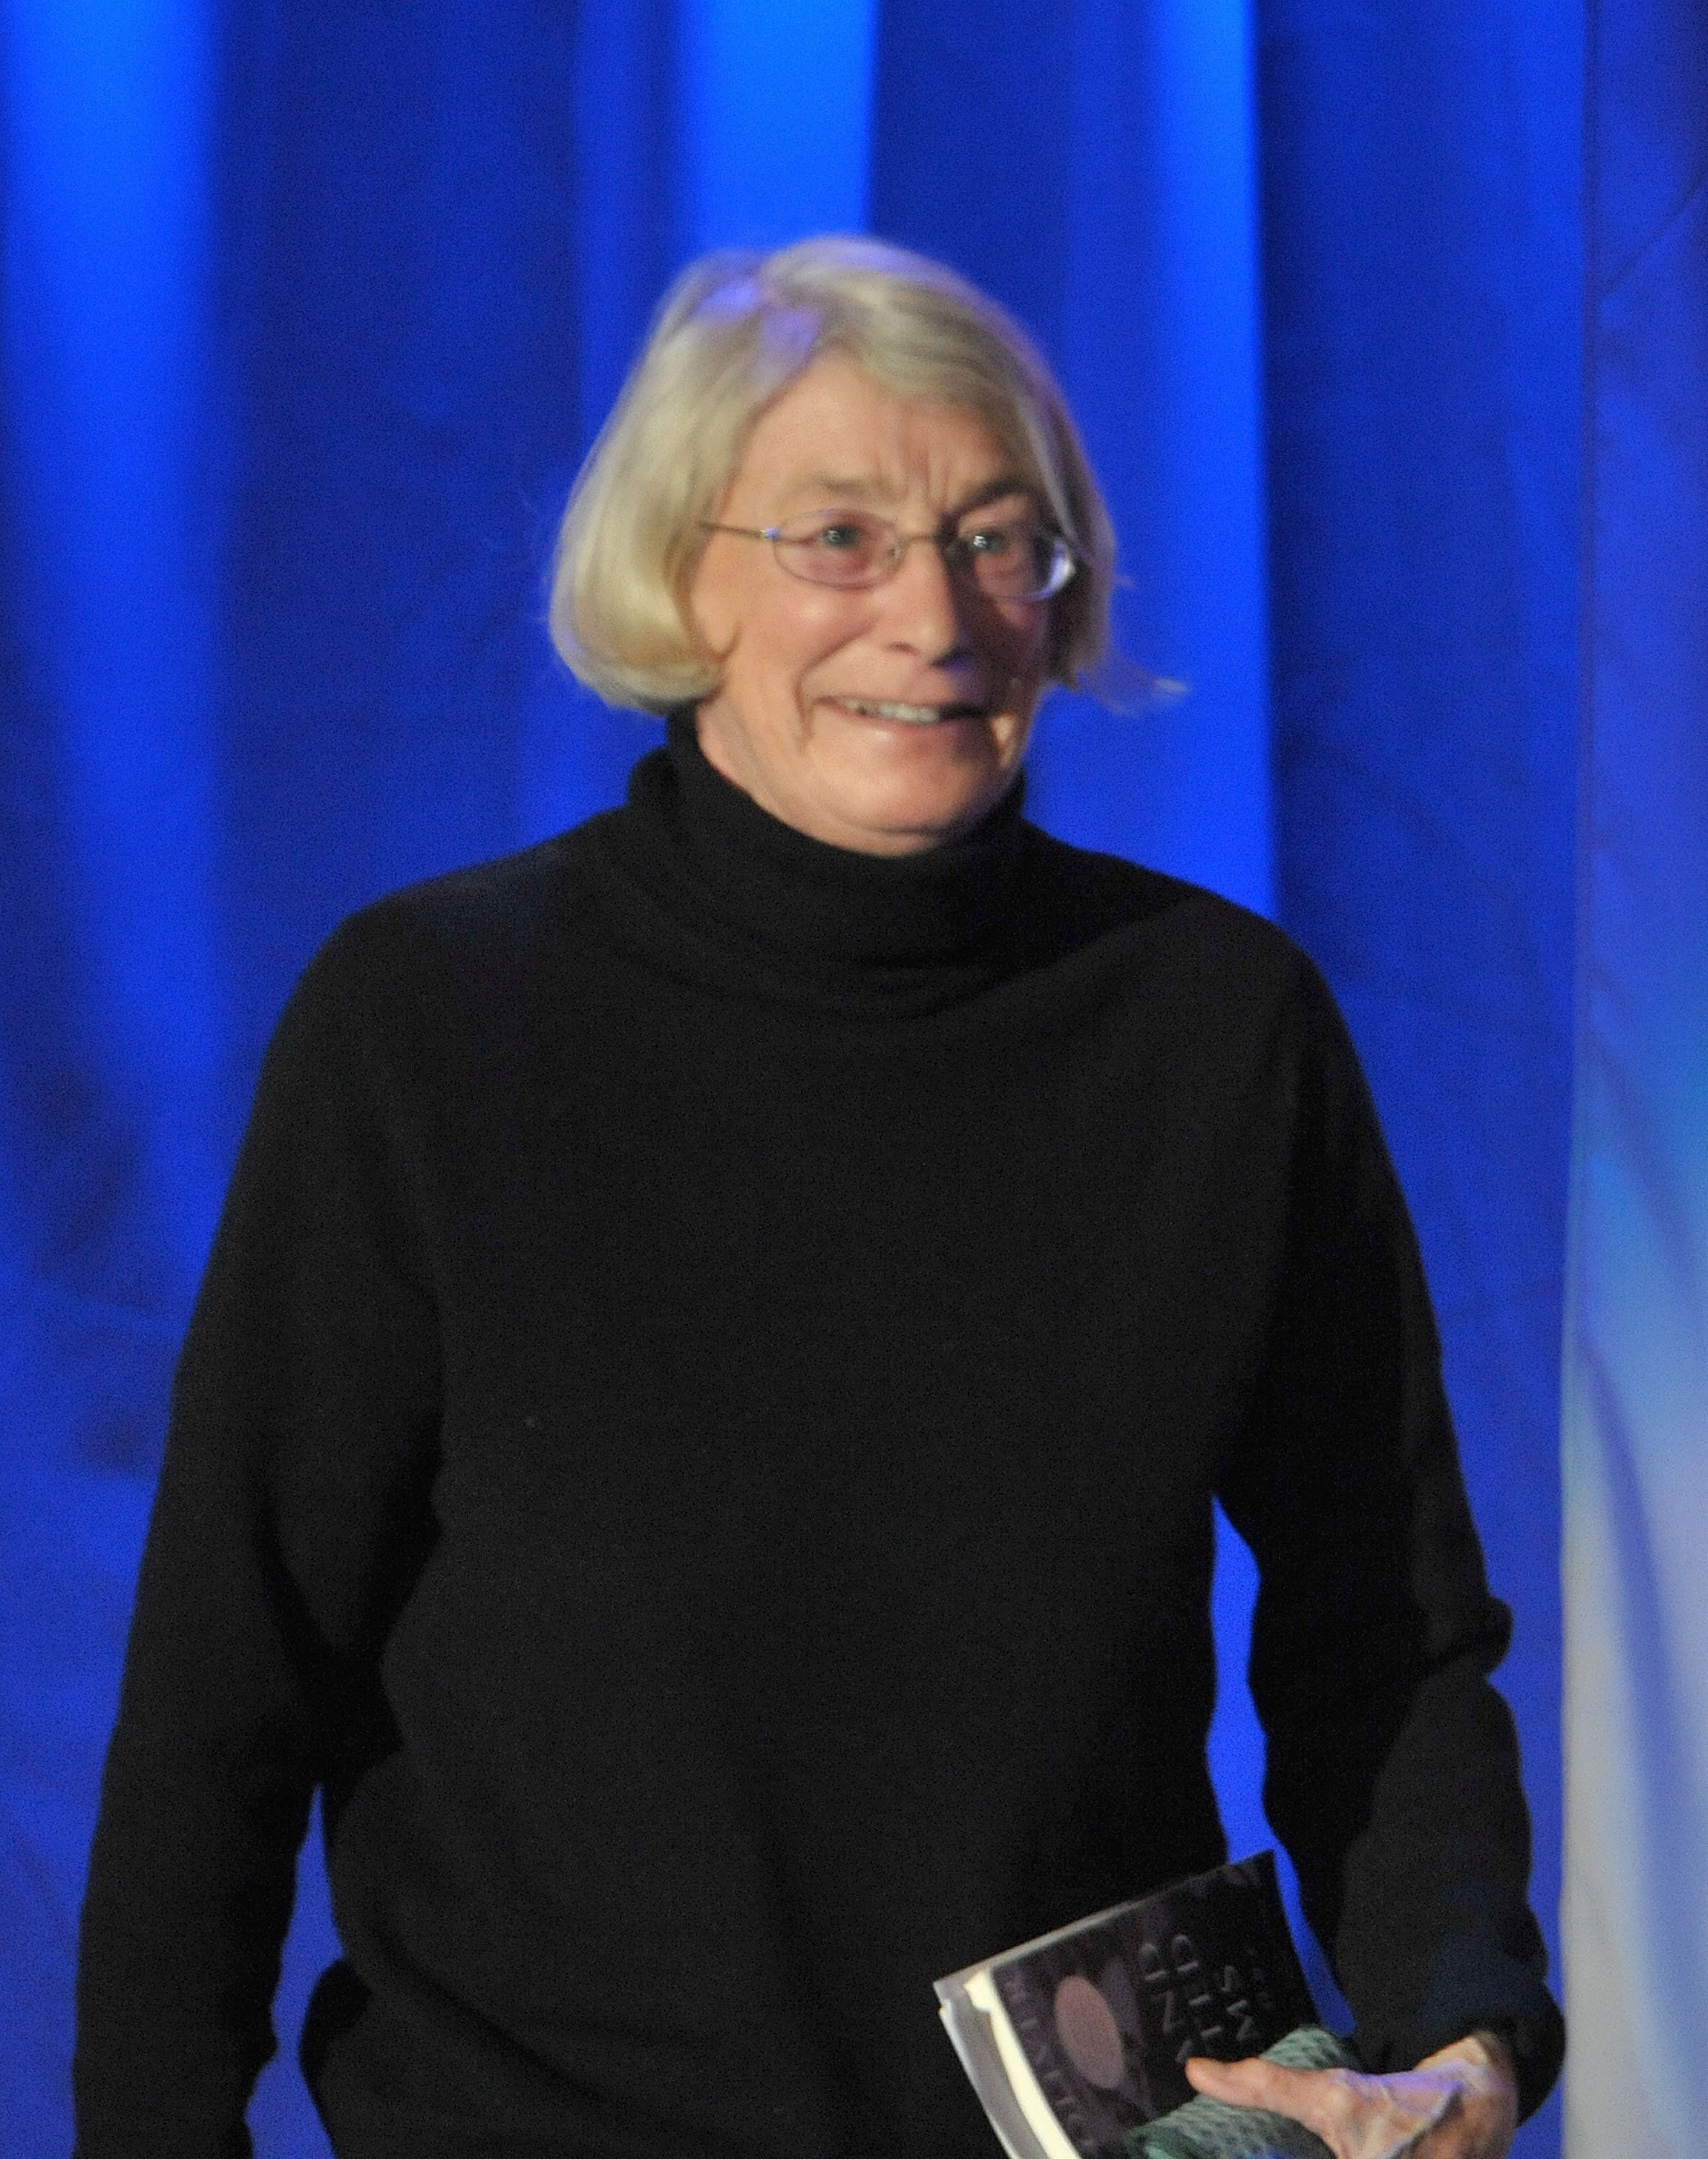 Pulitzer Prize winning poet, Mary Oliver attends day 3 of Maria Shriver's Women's Conference 2010 at the Long Beach Convention Center on October 26, 2010 in Long Beach, California. (Photo by Dr. Billy Ingram/WireImage)